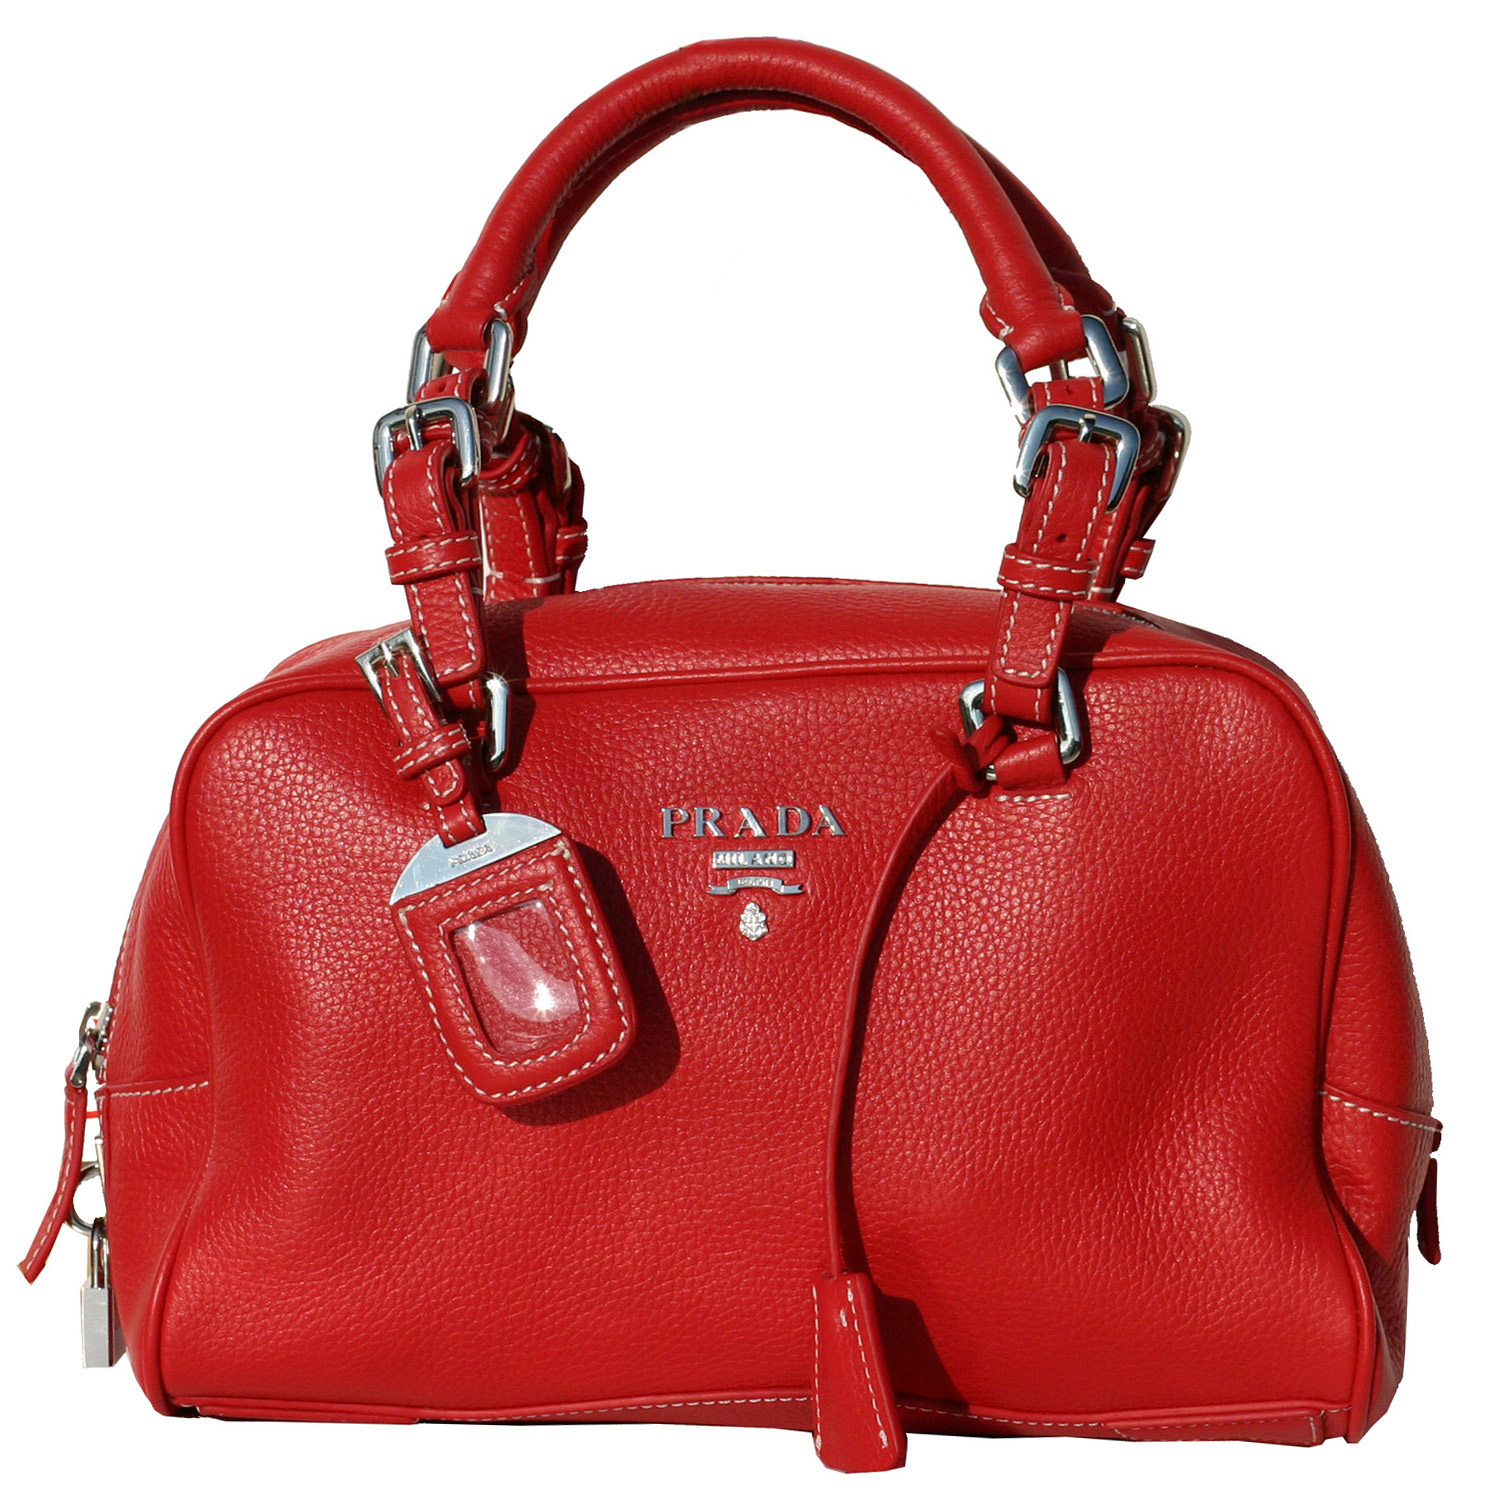 Prada BR3106 Vitello Daino Leather Handbag - Red